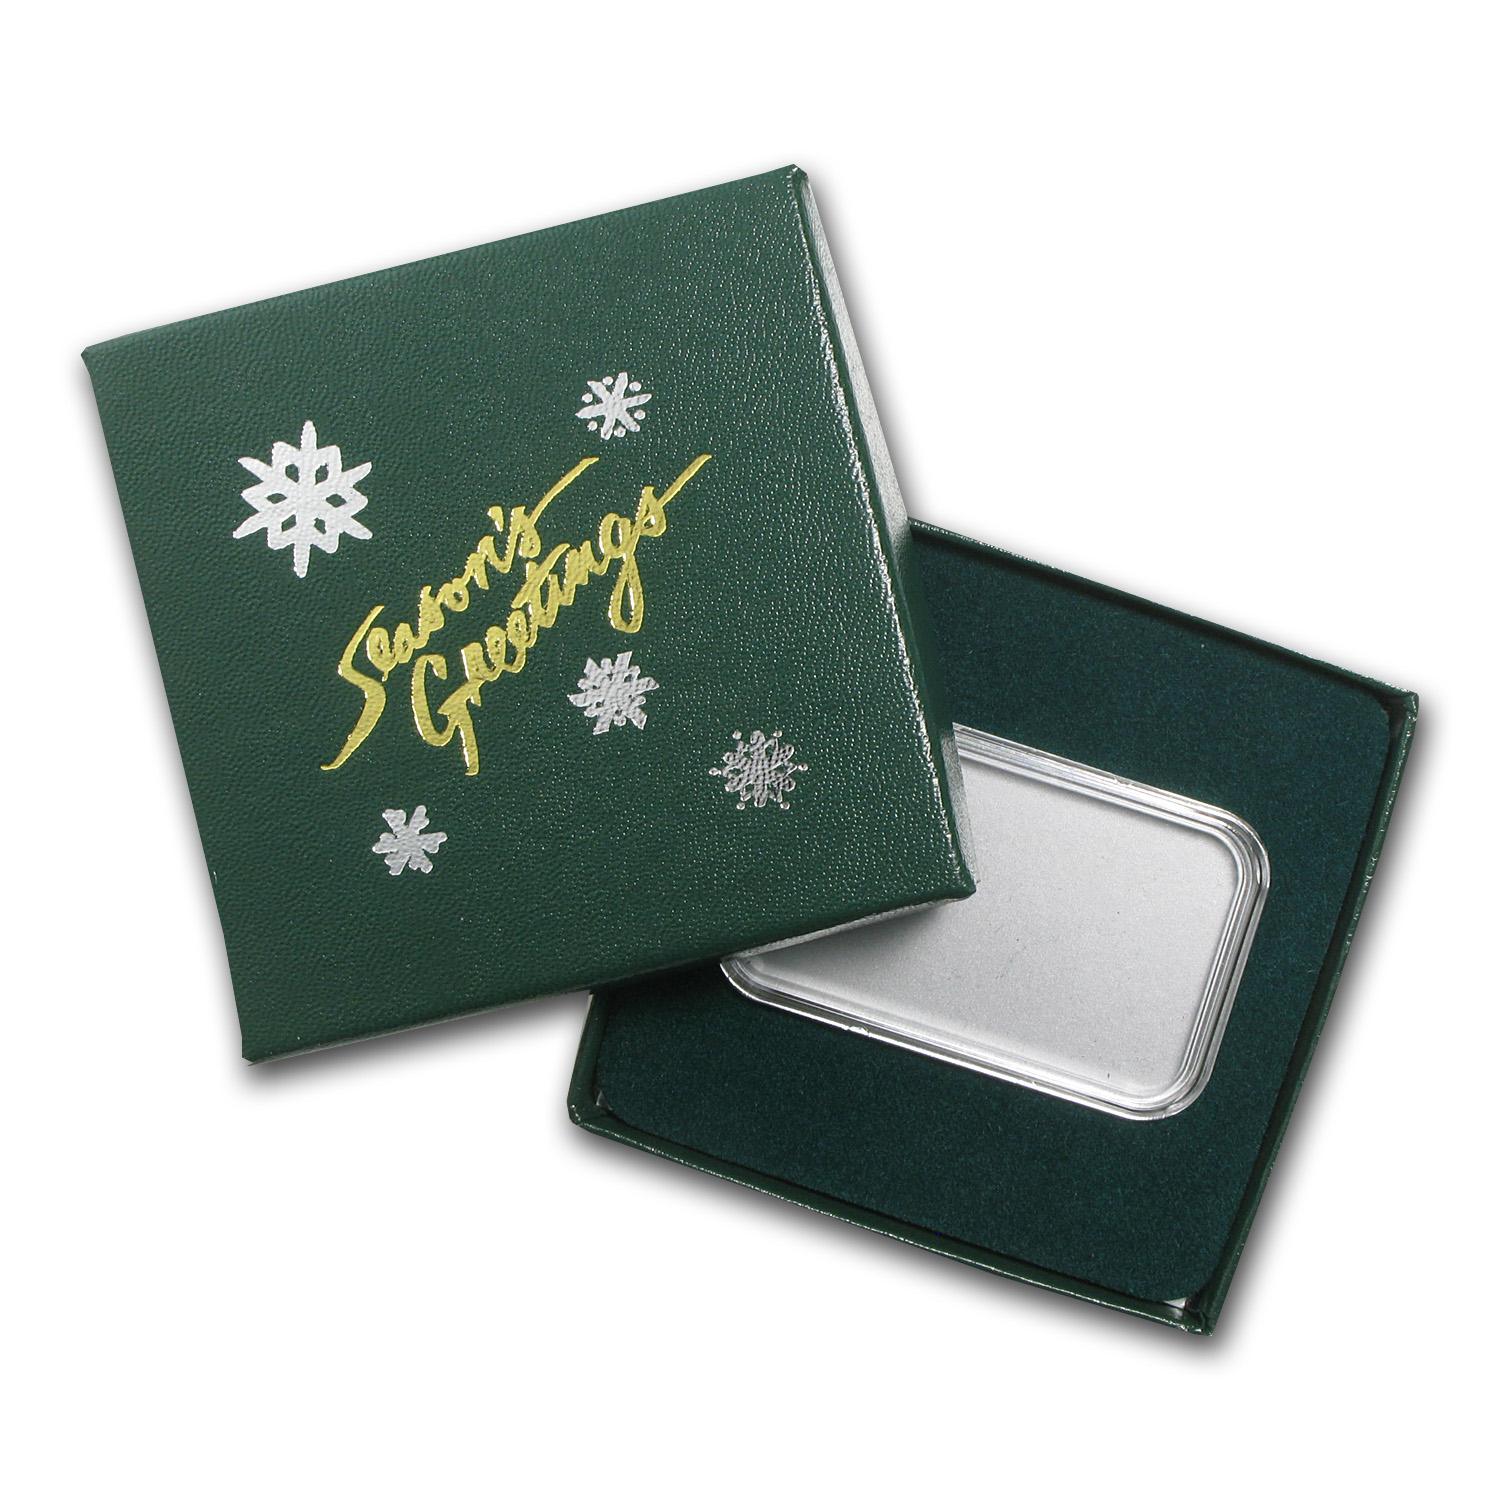 Season's Greetings Green Gift Box for 1 oz Silver Bars w/ Capsule